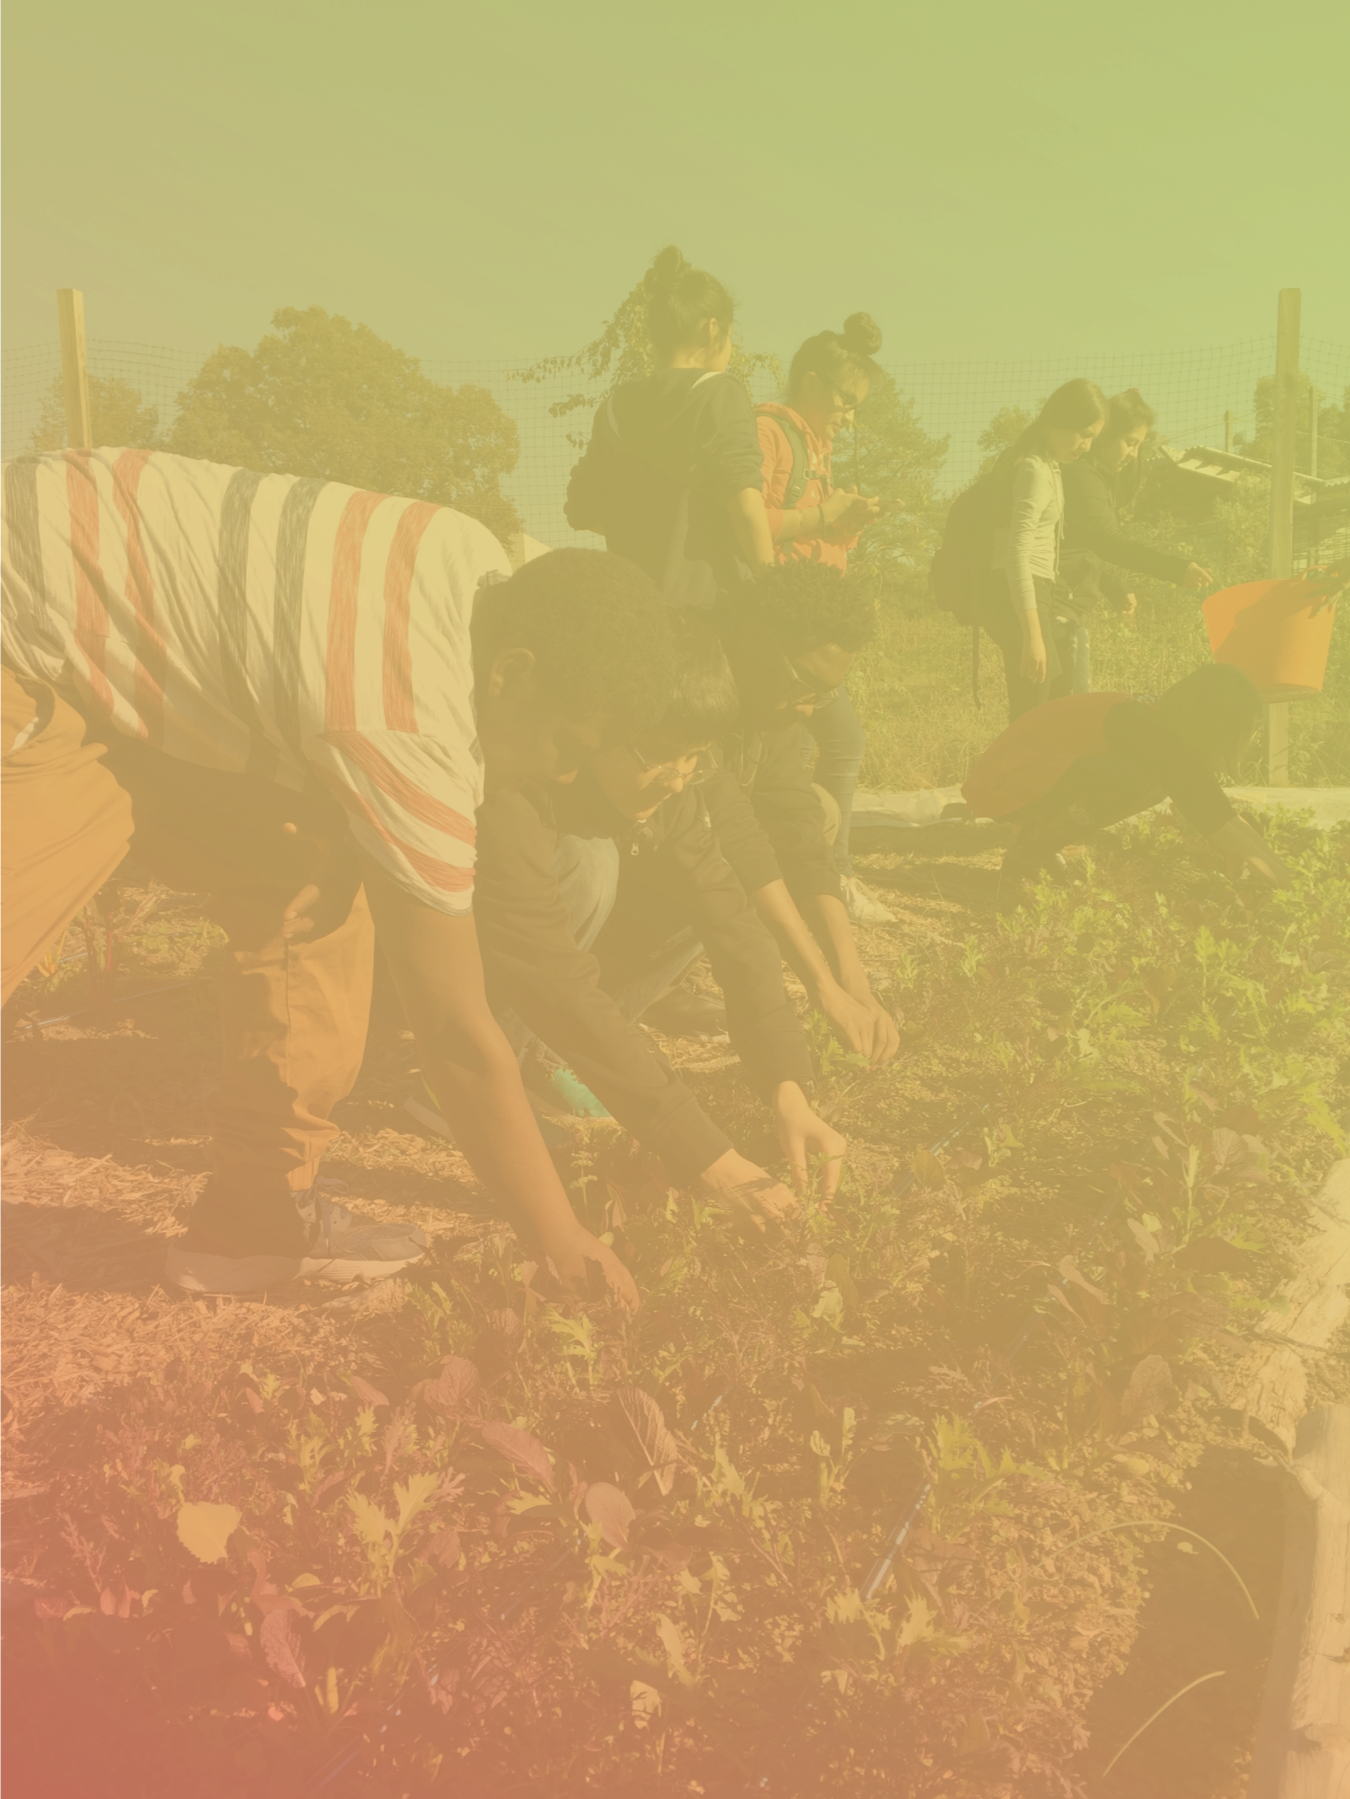 Our Mission - FIG is committed to building just, equitable, and resilient food systems. We believe that all people have the right to access good food — food that nourishes bodies, communities, and the planet.Good food for the common good.